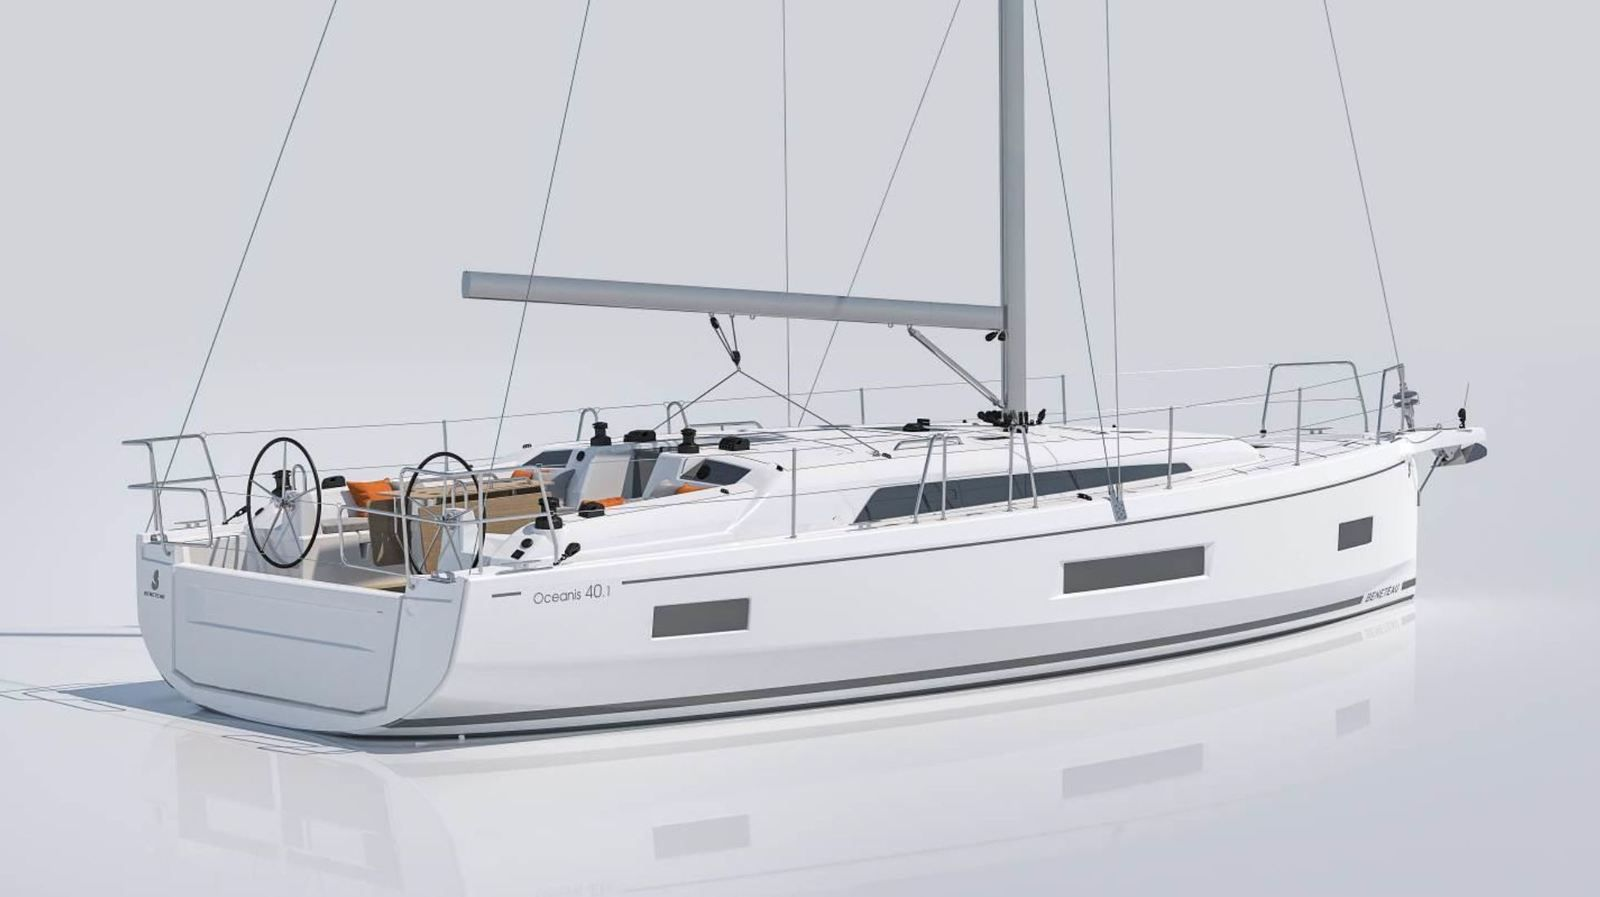 Rear view of the Beneteau Oceanis 40.1